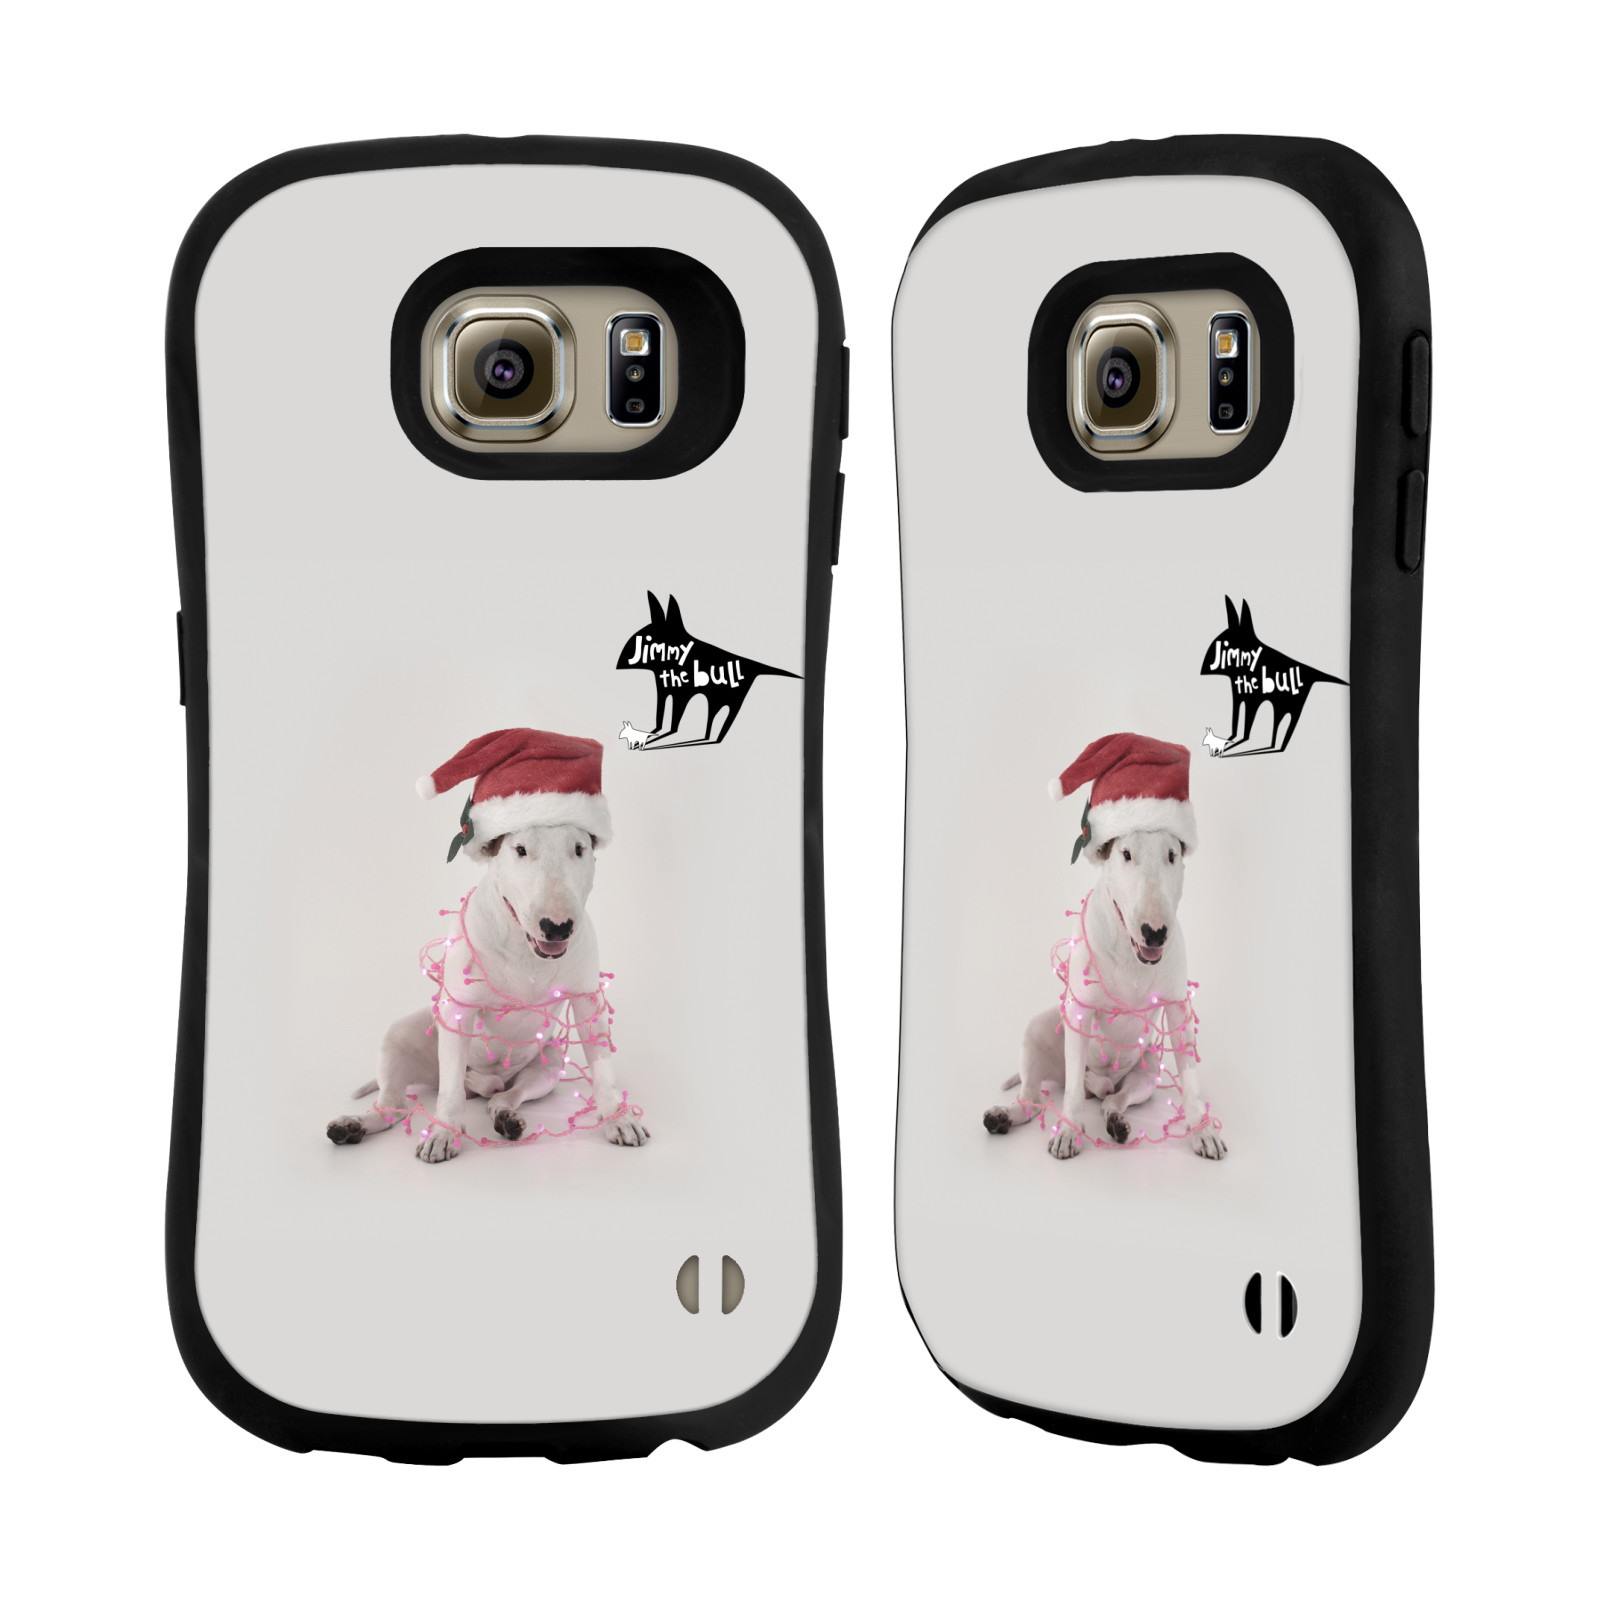 OFFICIAL-JIMMY-THE-BULL-PHOTO-2-HYBRID-CASE-FOR-SAMSUNG-PHONES